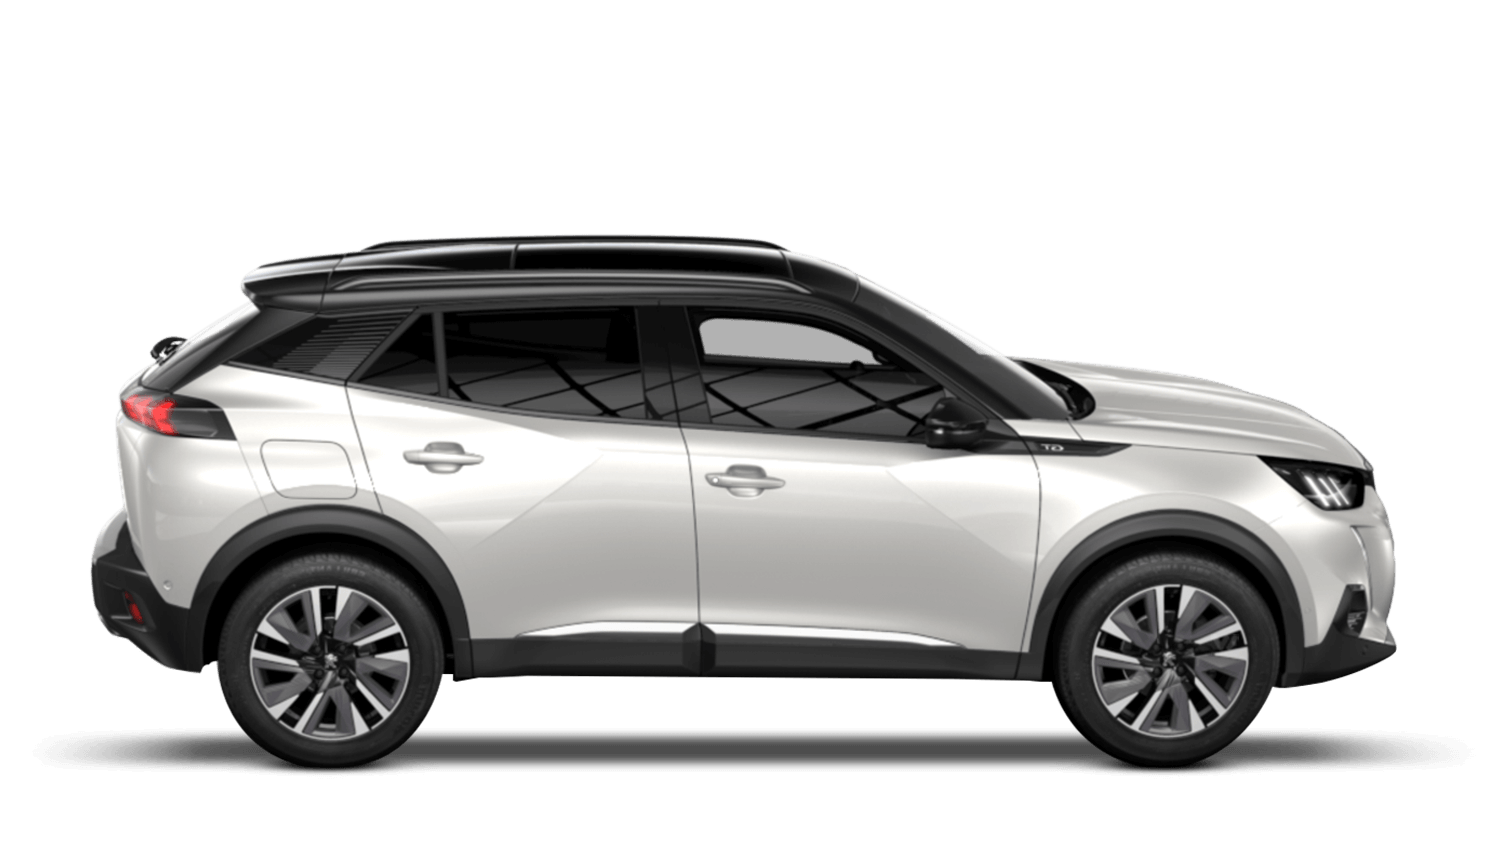 Pearlescent White All-new Peugeot 2008 SUV